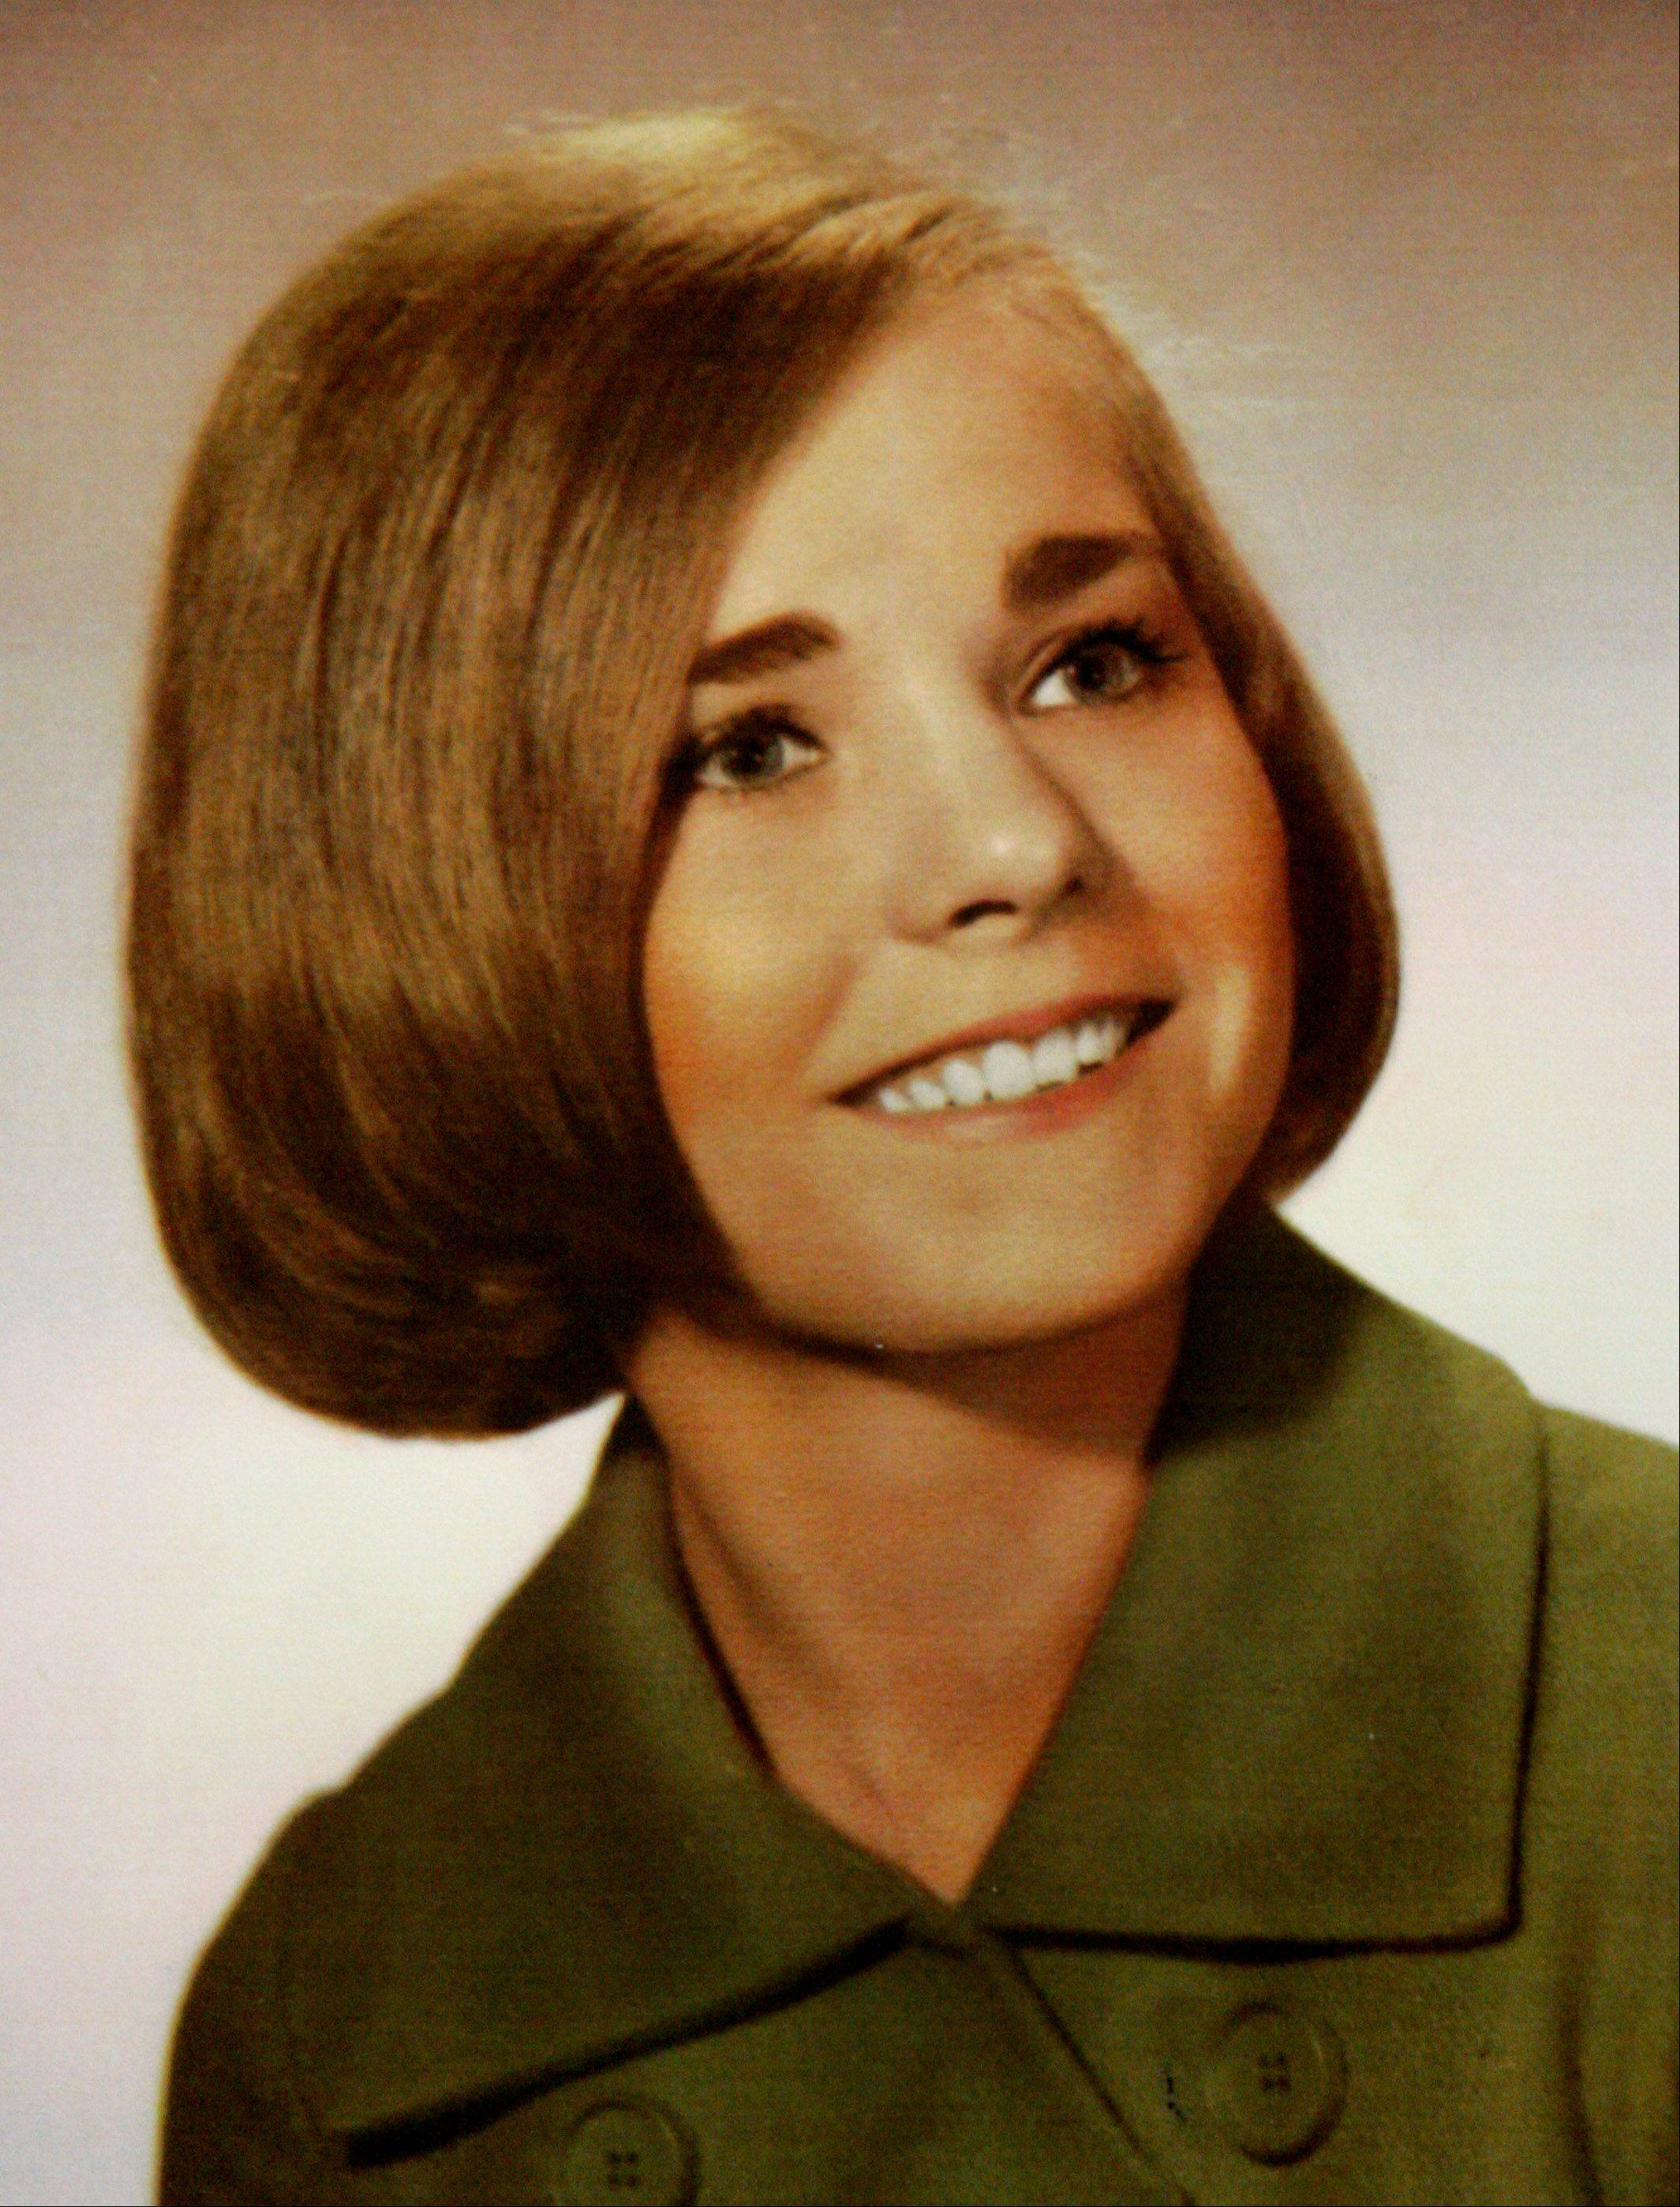 Darlene Stack of Wheaton was stabbed to death in 1976. Charges were filed Tuesday against Michael Whitney for the killing.